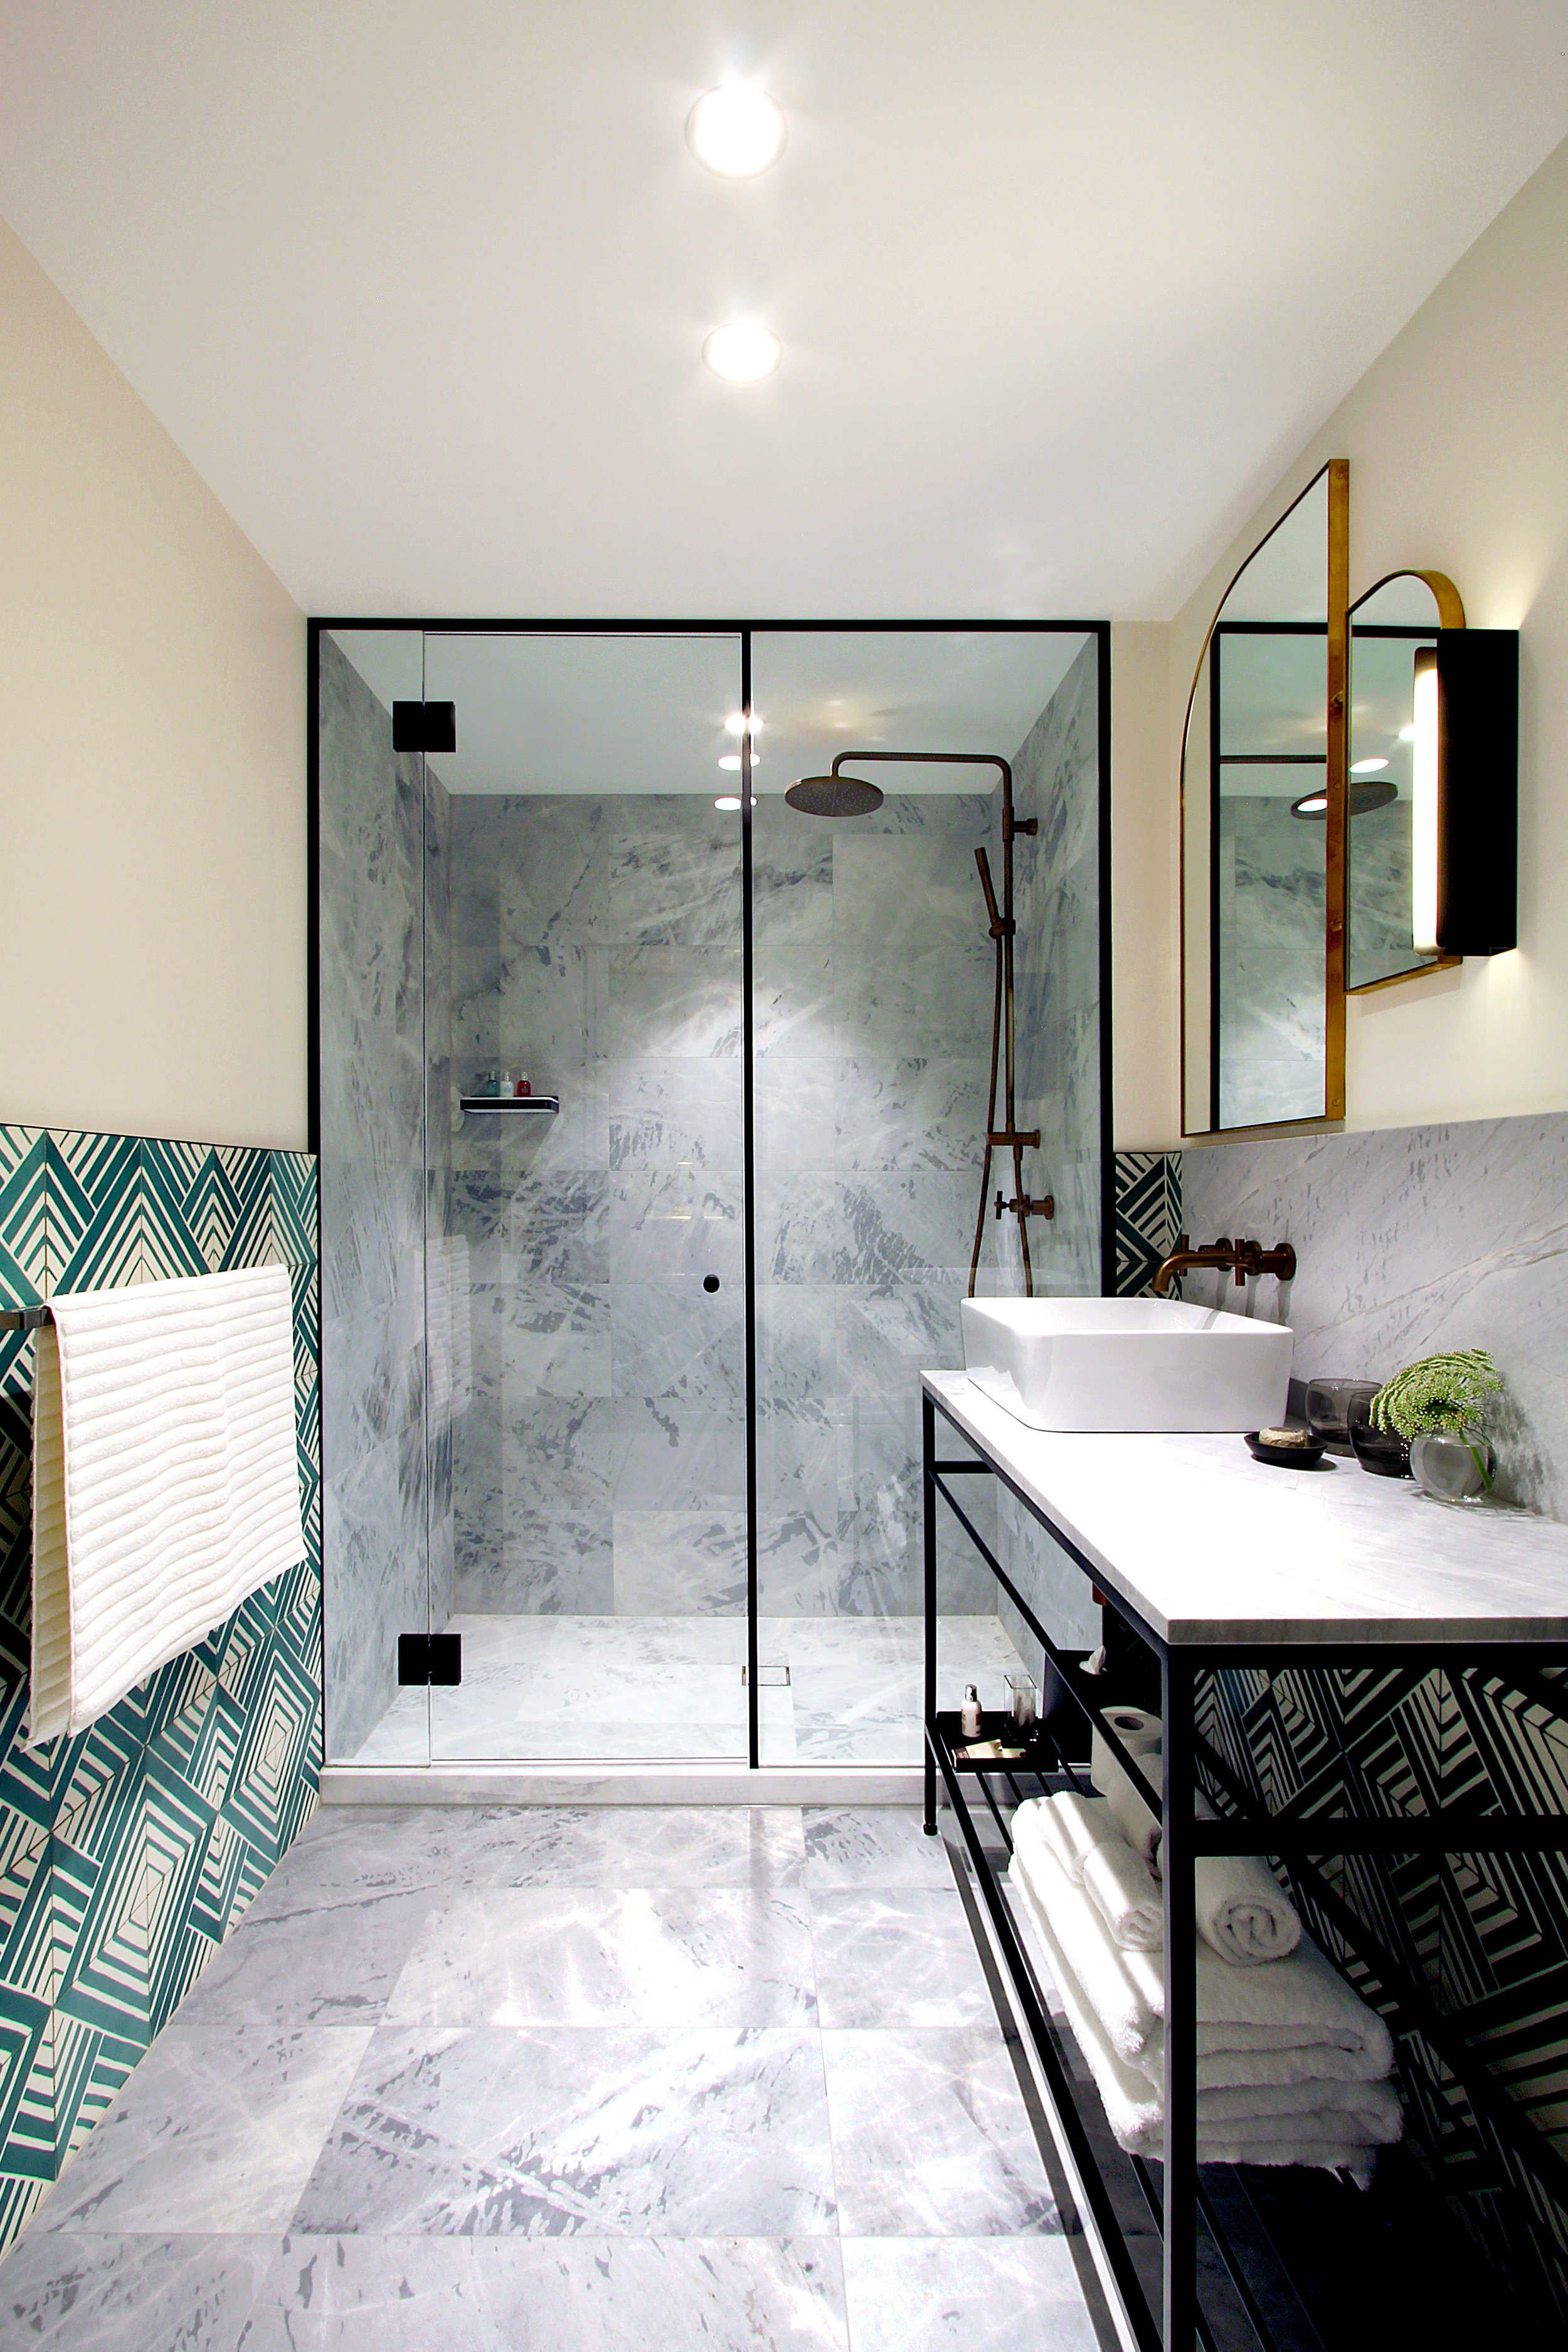 TYA Photography | Little Albion Guest House | Suite bathroom | Winter | Morning 01 | A6590.jpg